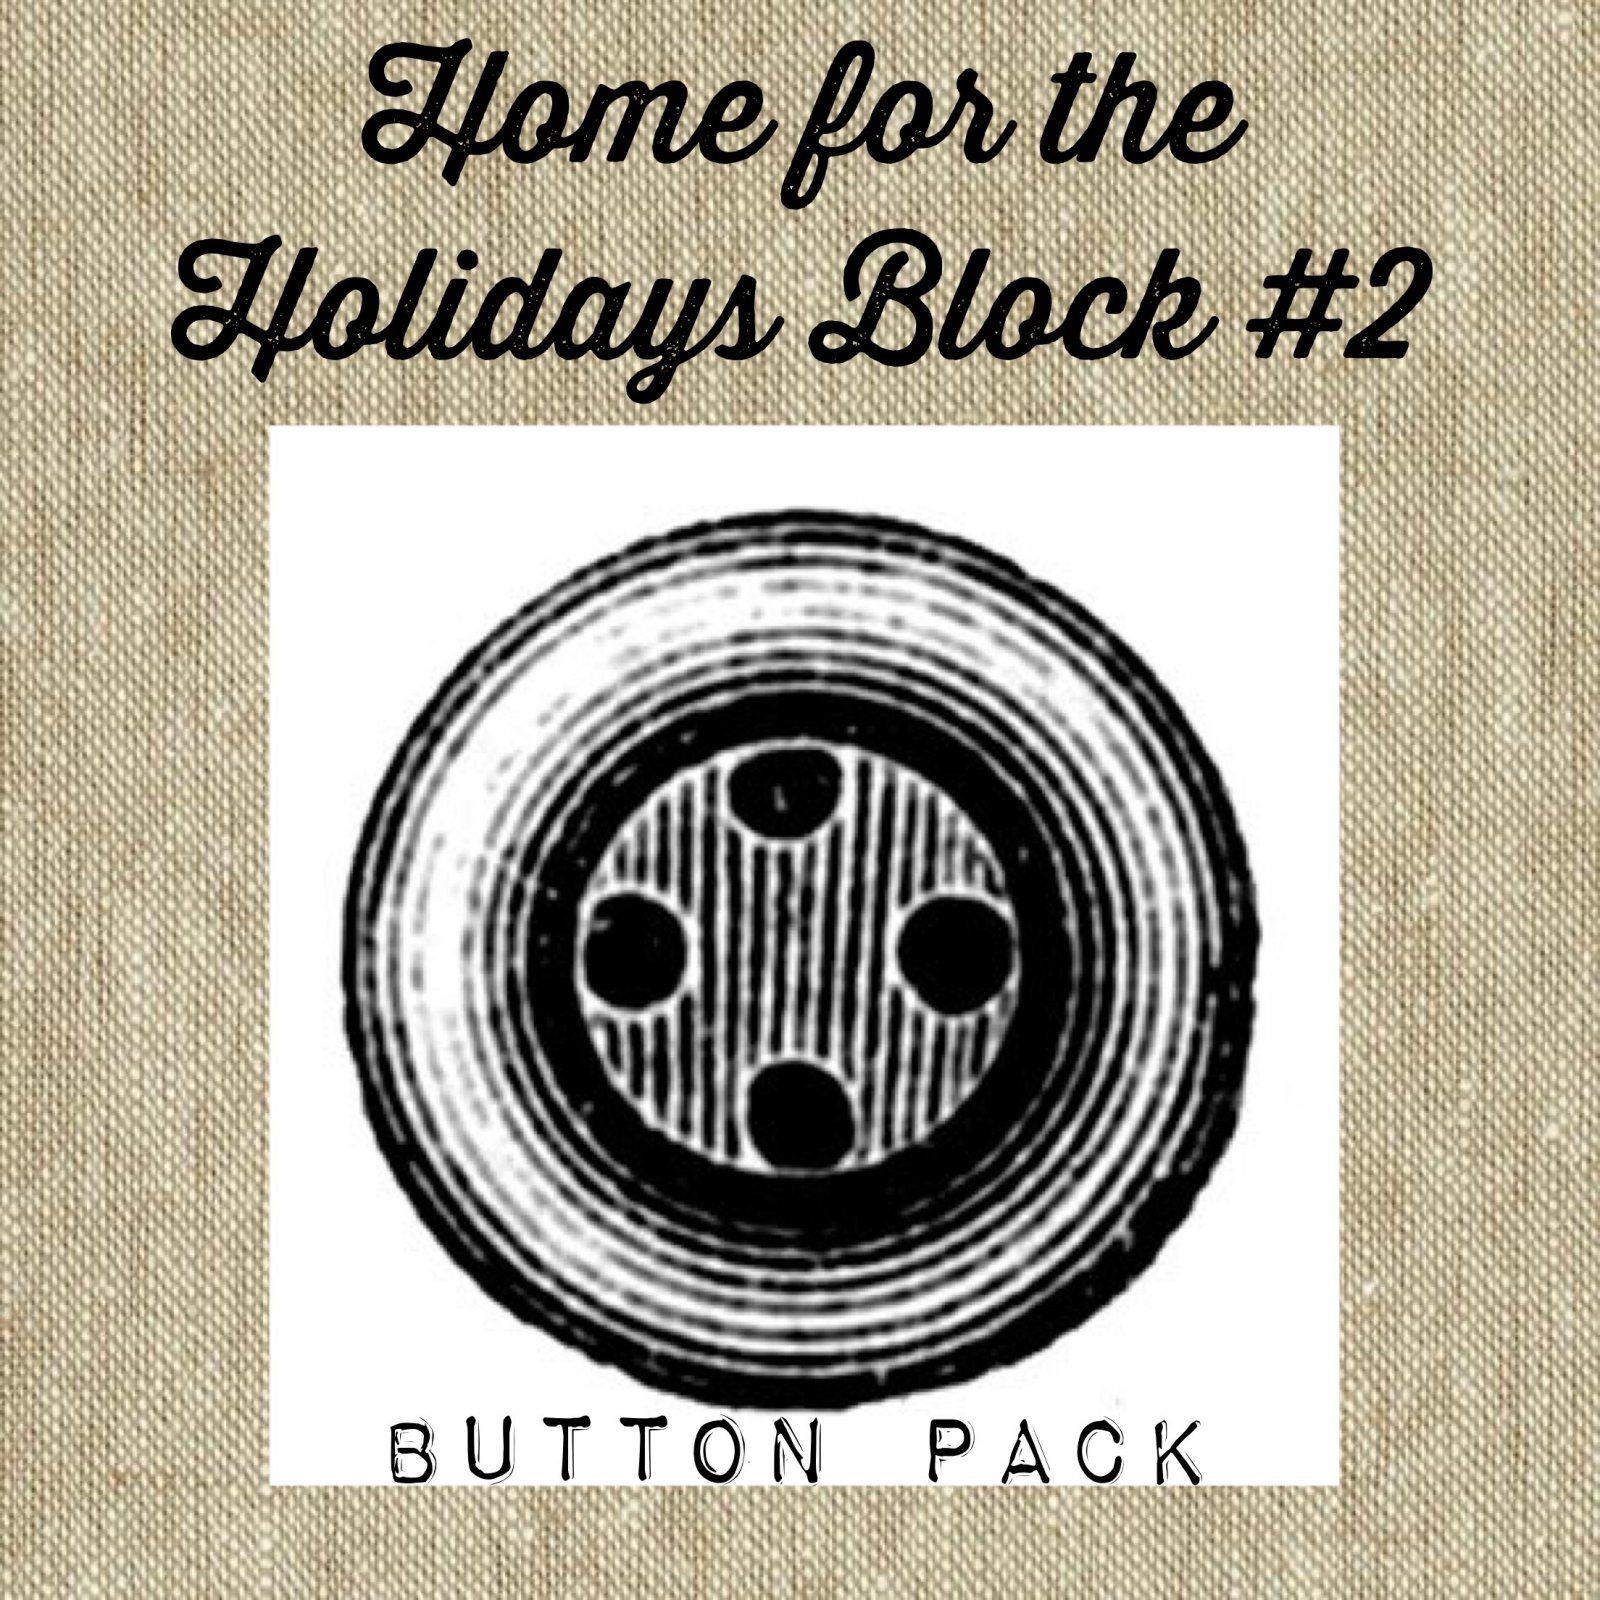 Home For The Holidays BOW! Block #2 Button Pack